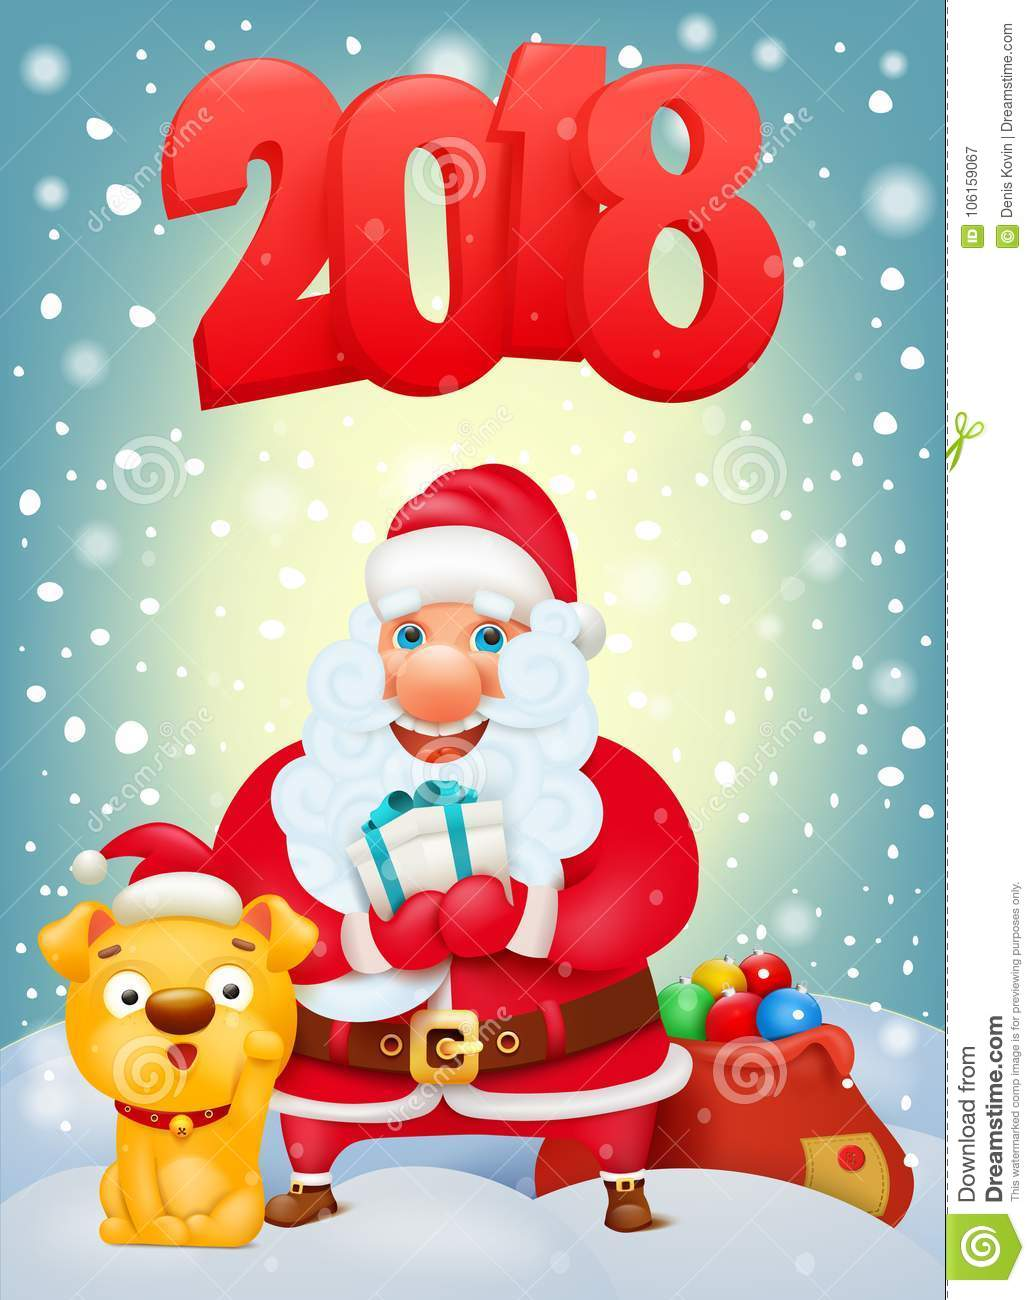 Santa Claus Cartoon Character With Yellow Dog New Year Invitation